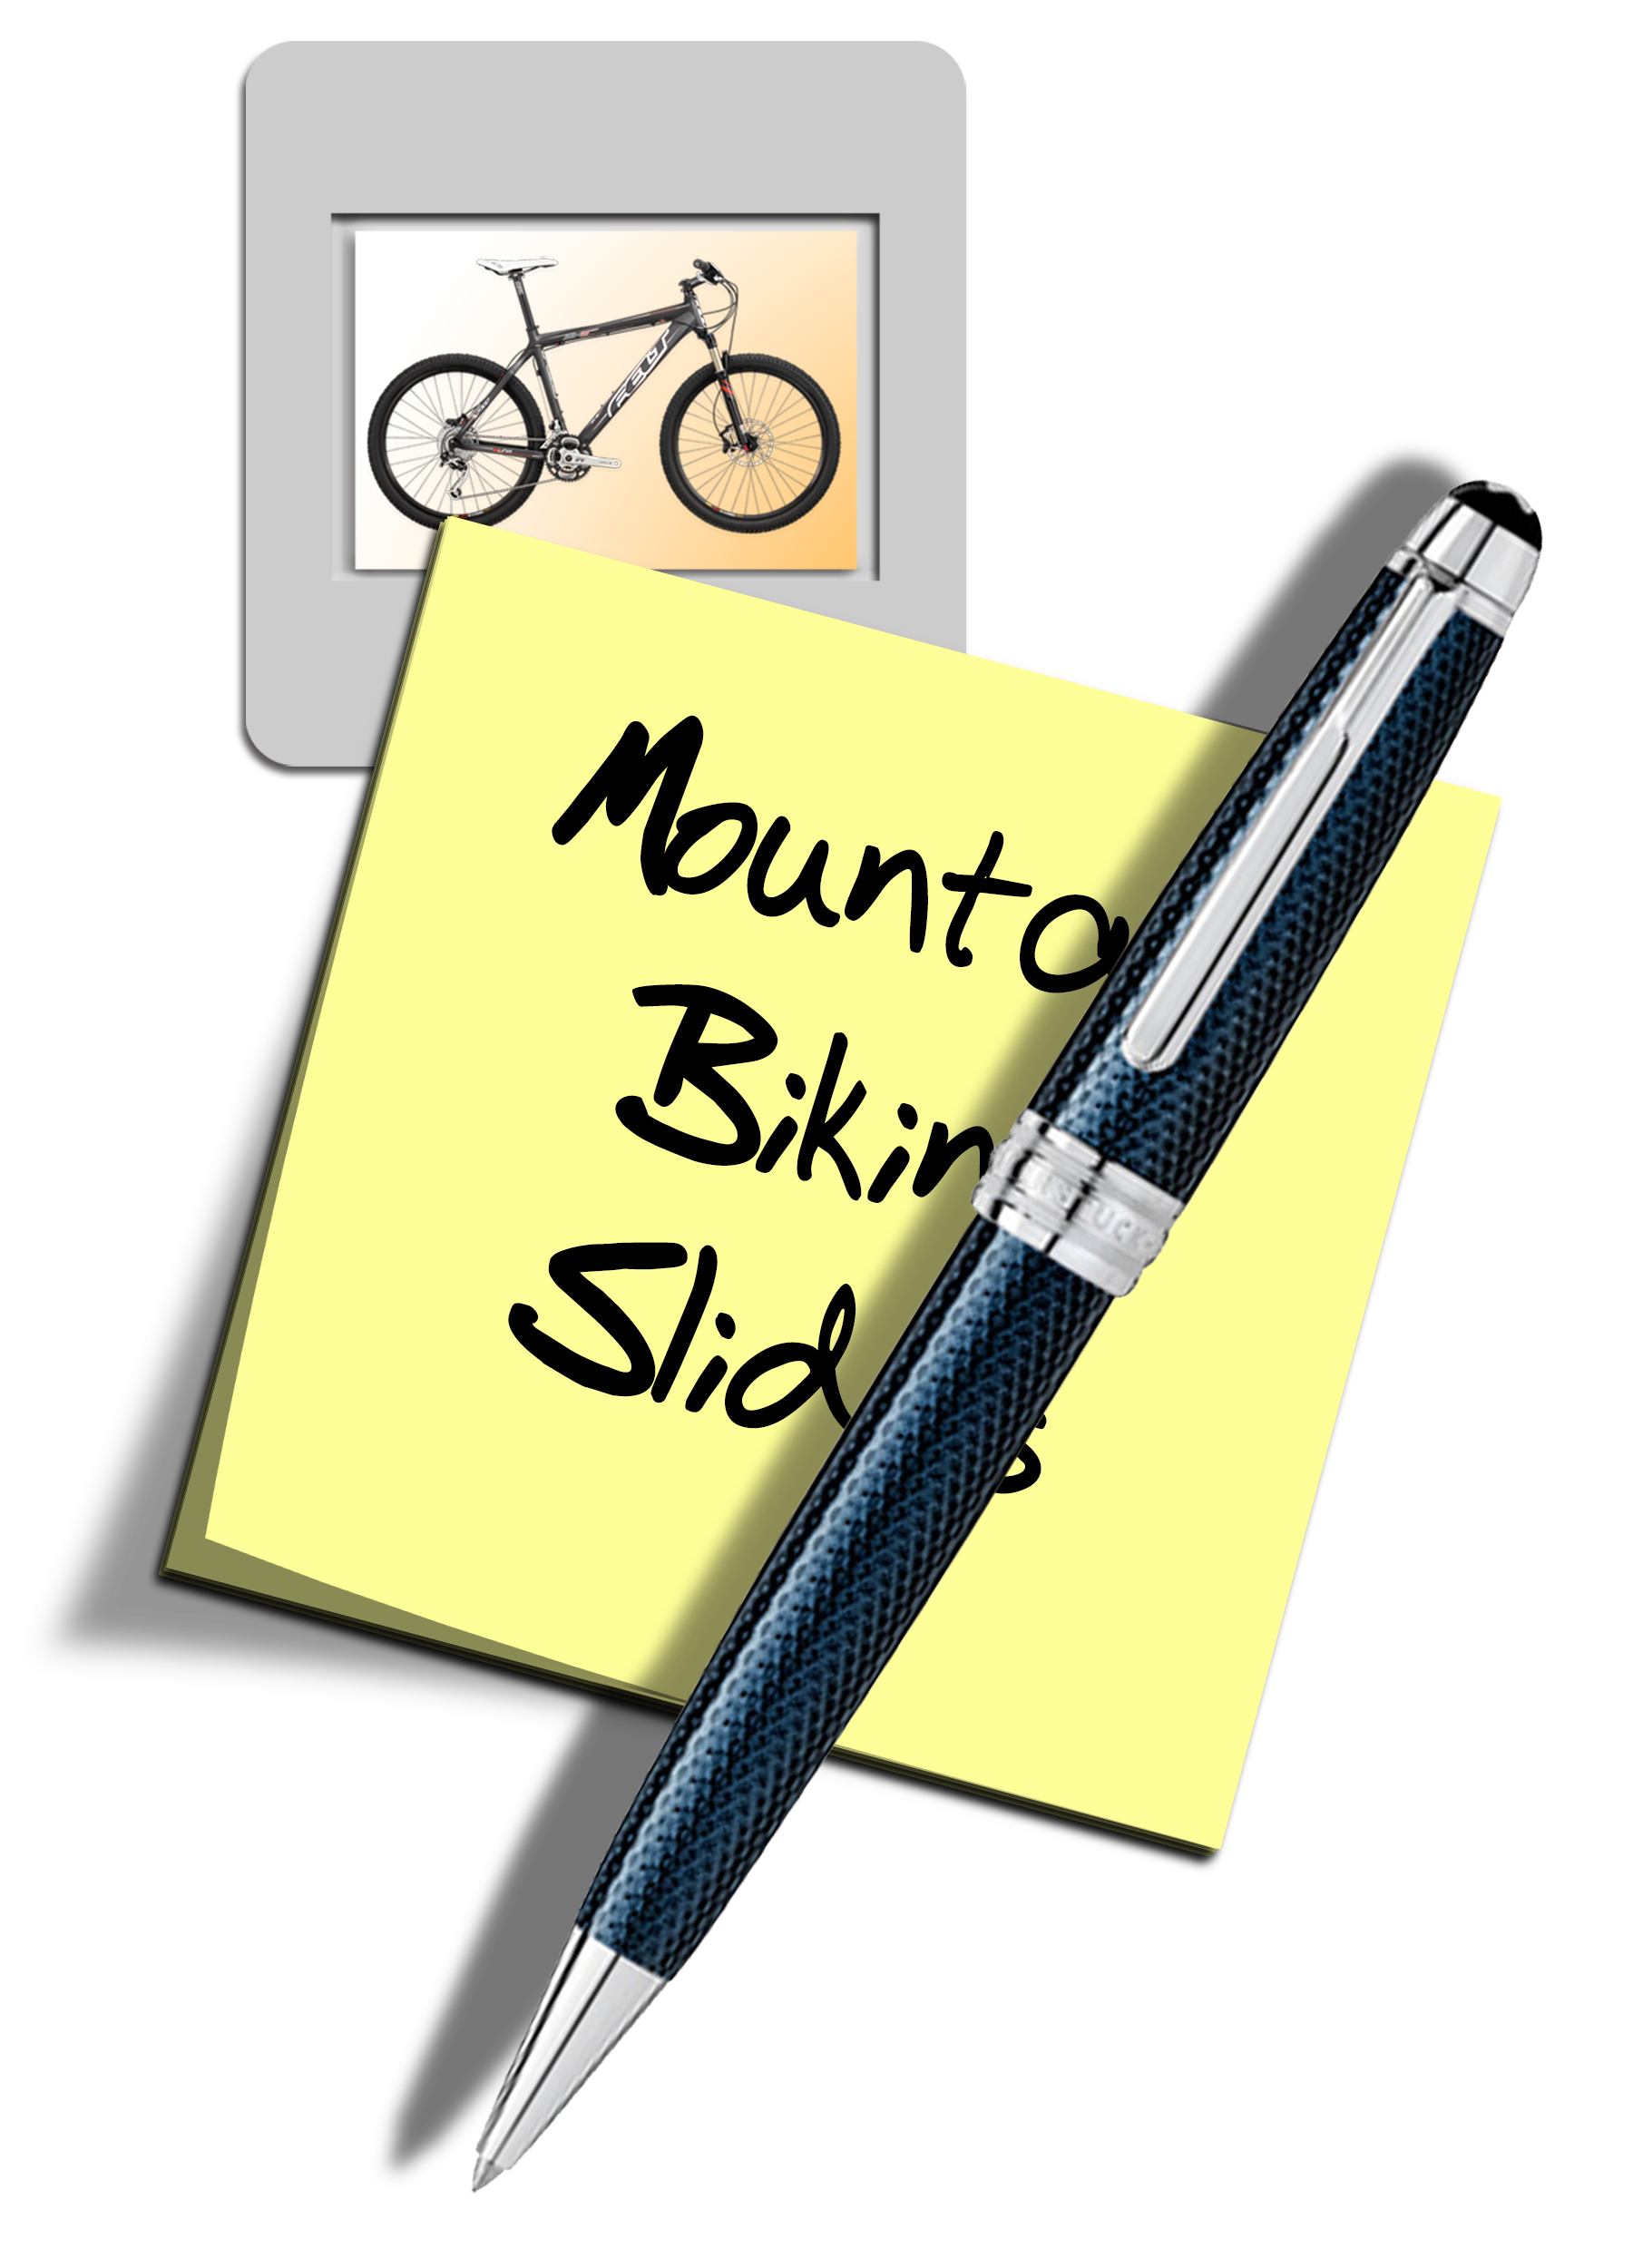 Mountain Bike Slides